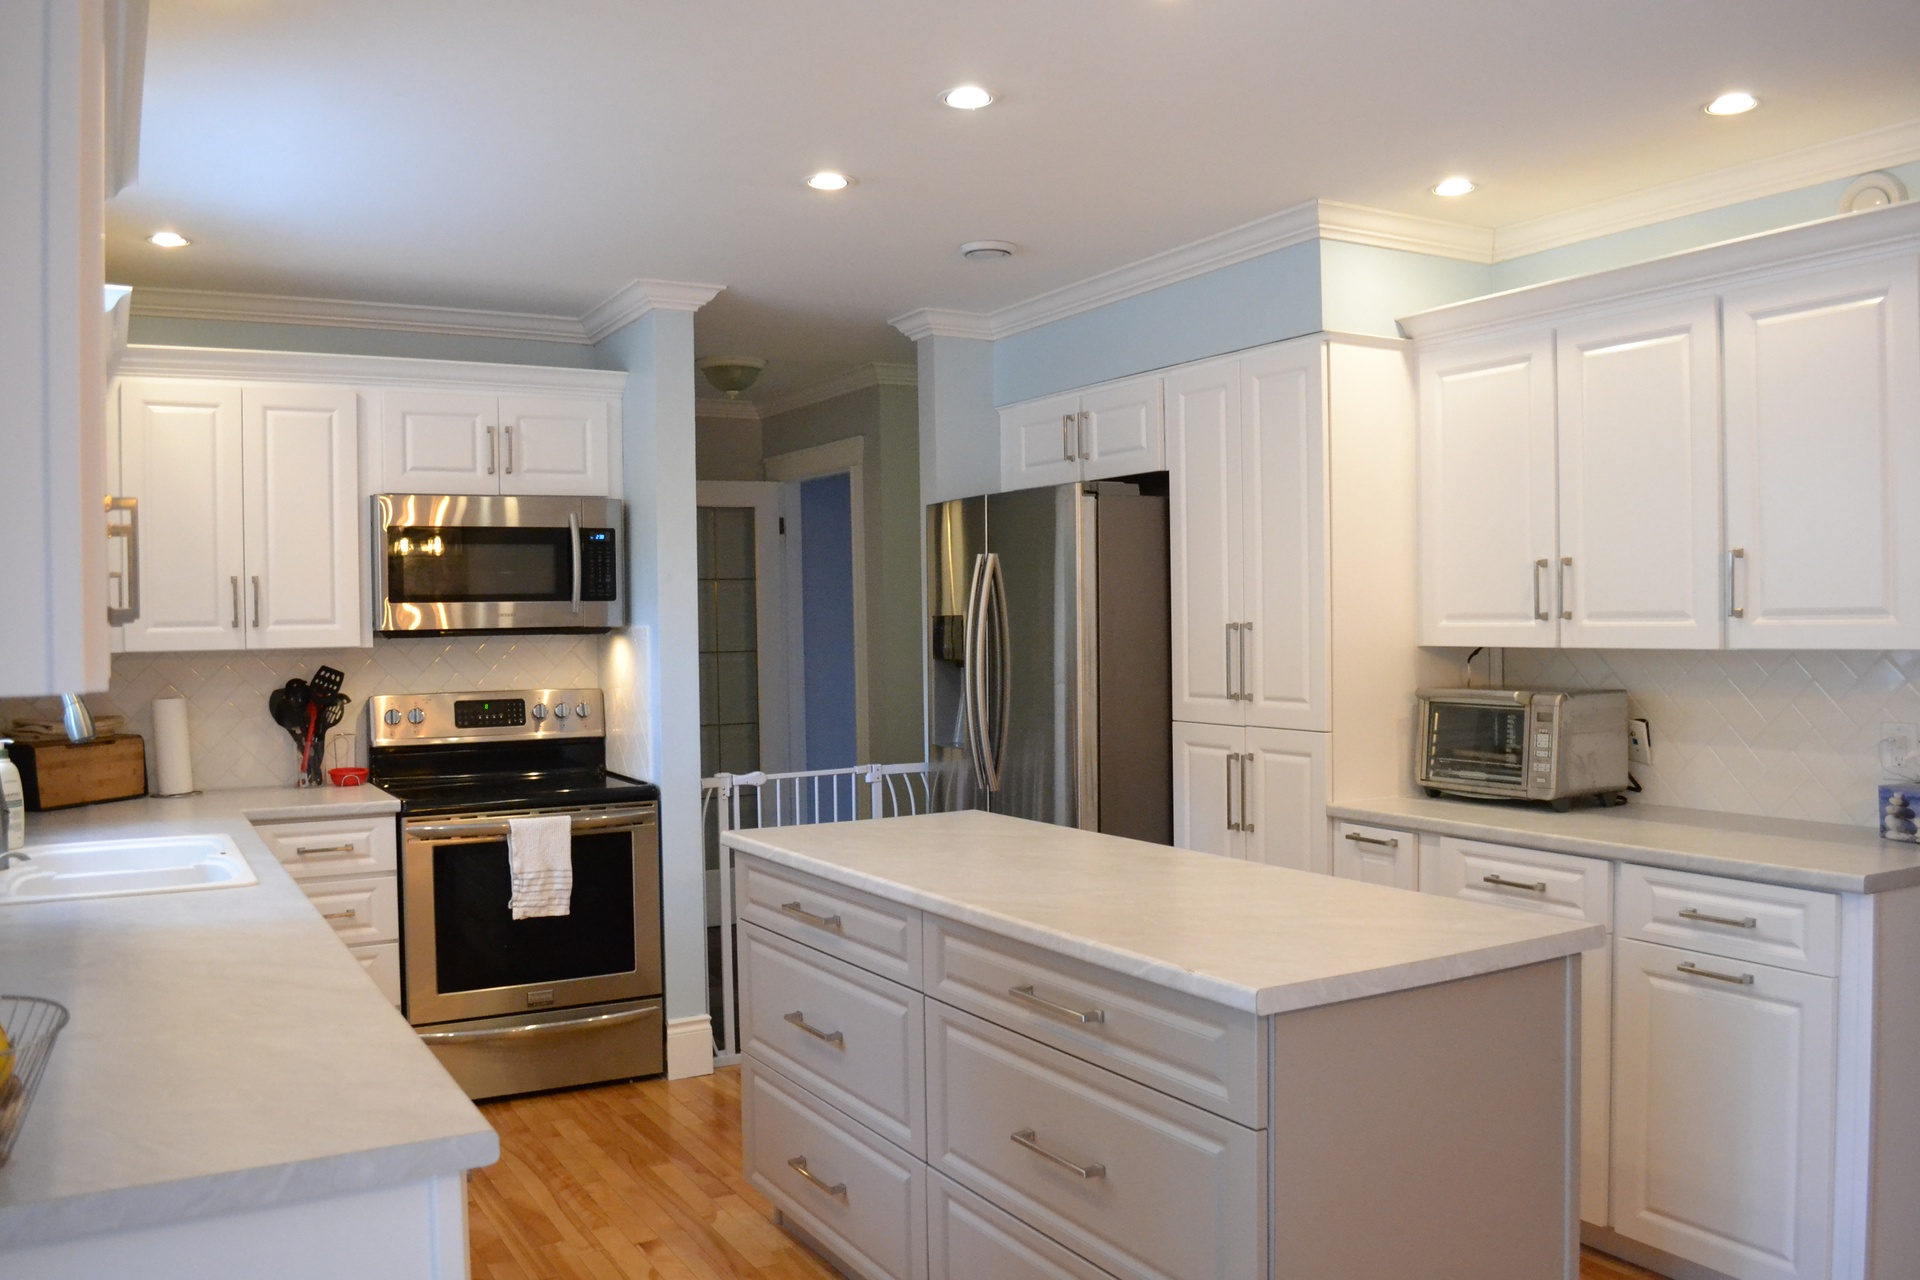 Kitchen Cabinets Port Coquitlam Professional Cabinet Refacing And Door Refinishing Vancouver